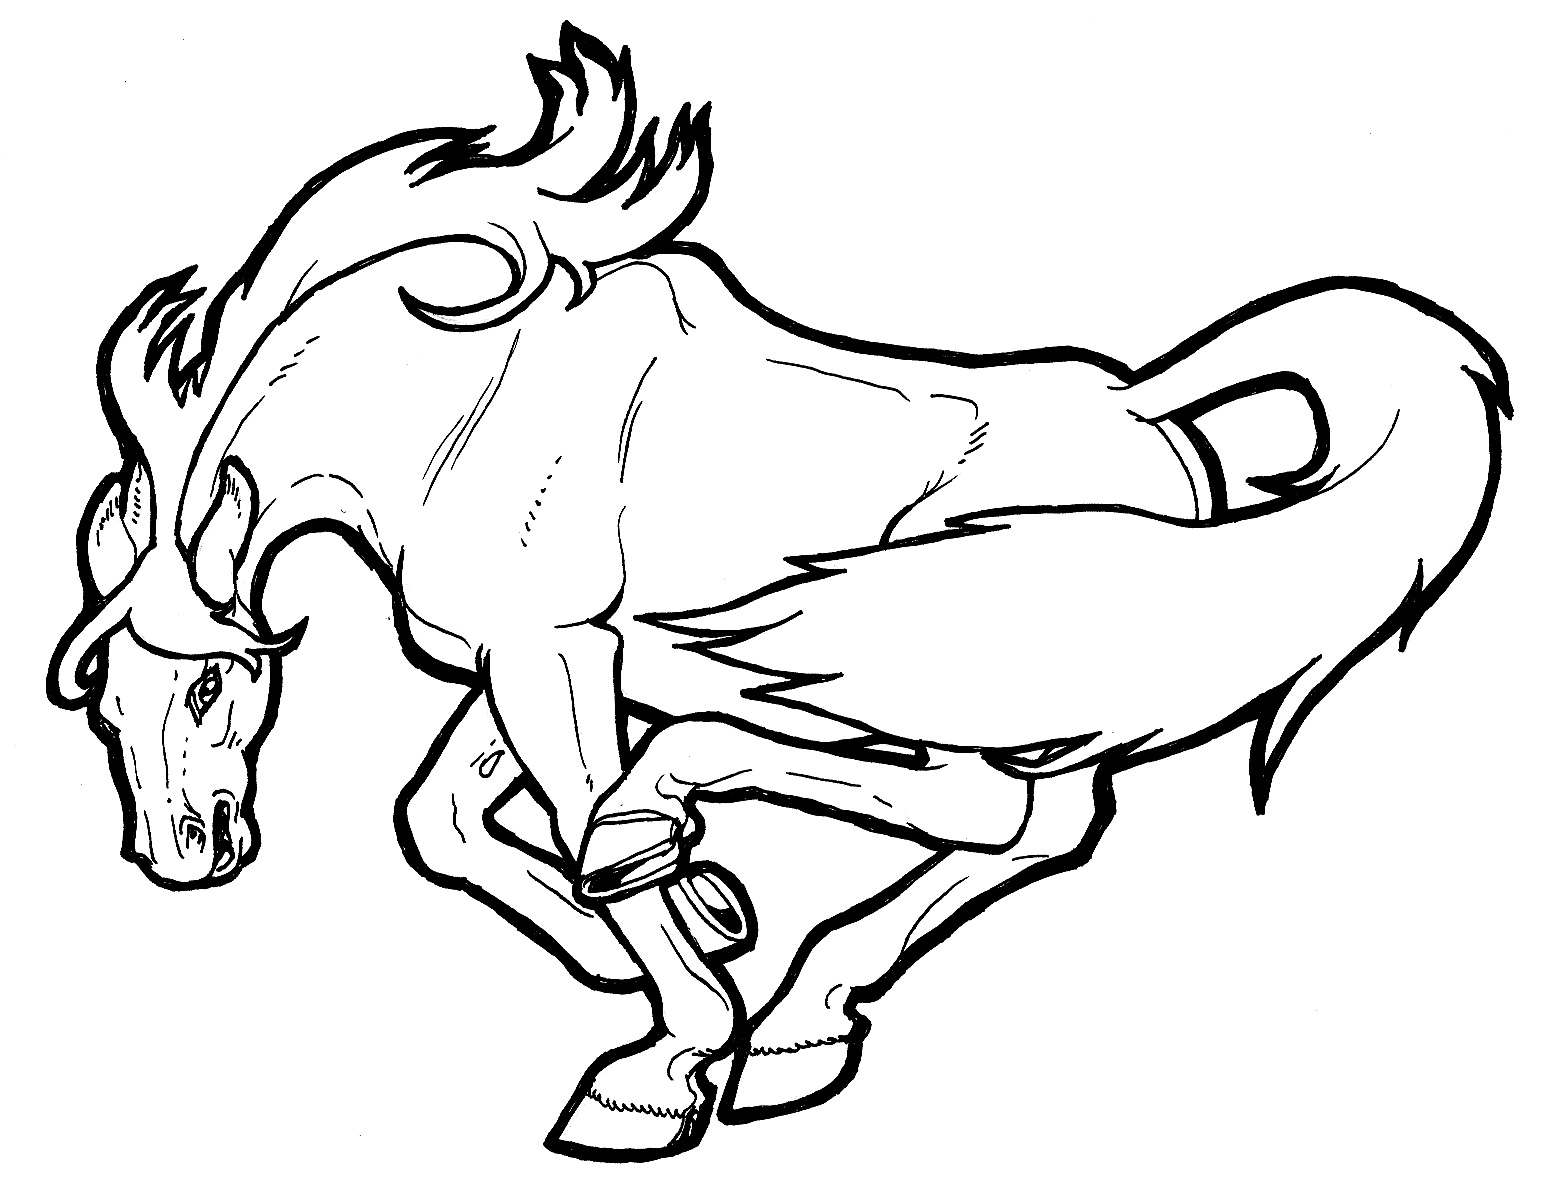 mustang horse coloring pages mustang horse coloring pages coloring pages to horse mustang coloring pages